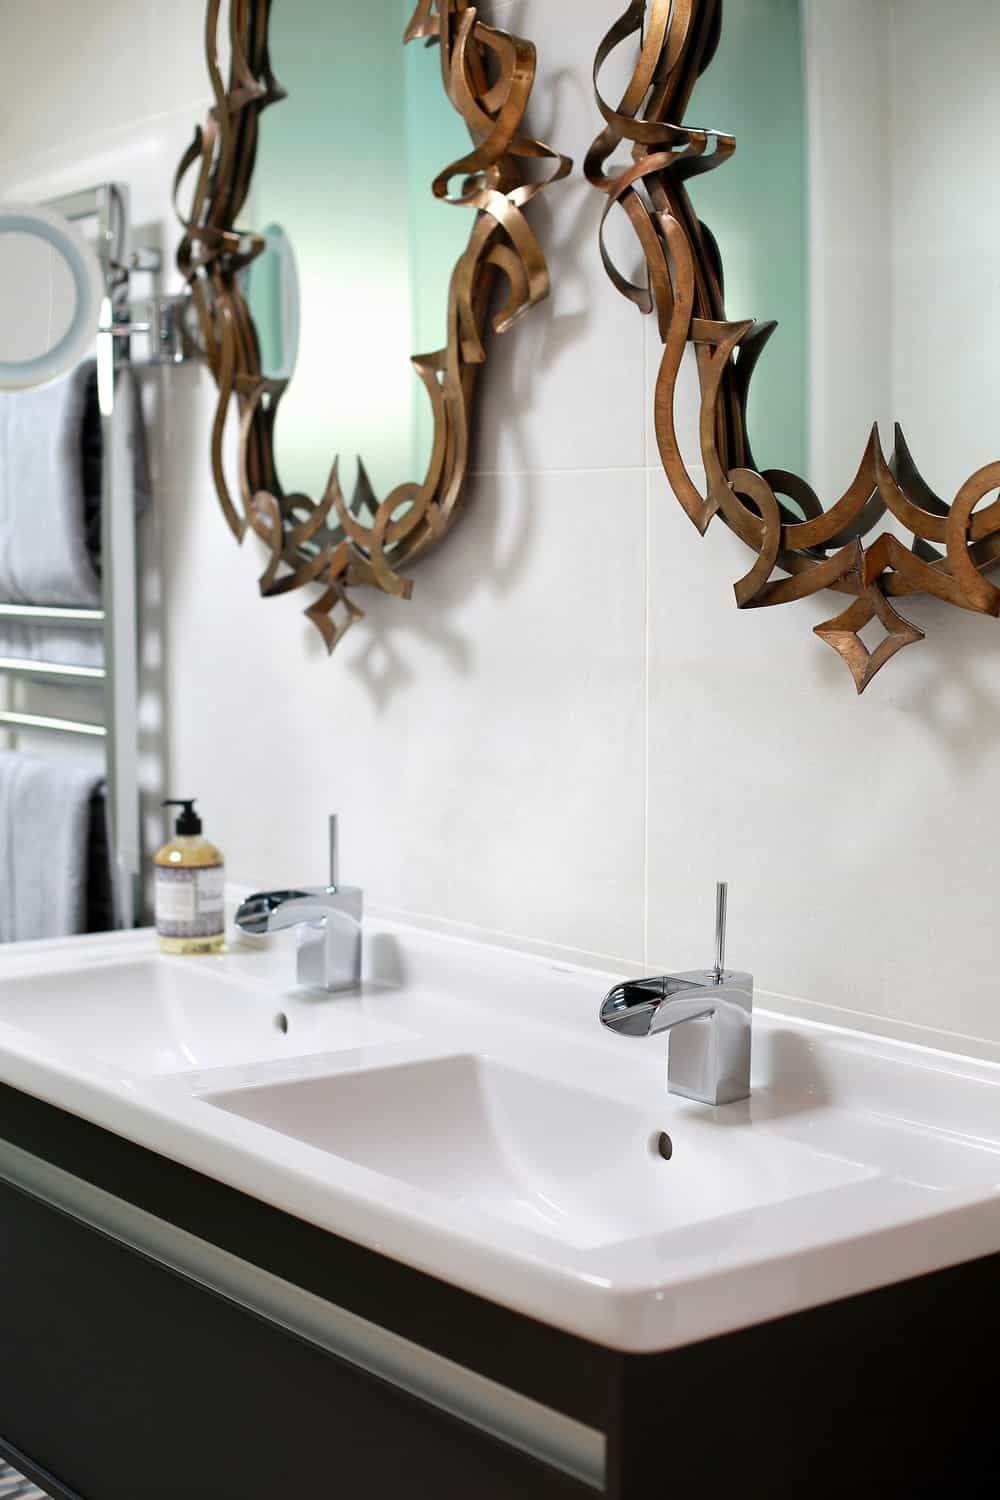 Double sink with stylish mirrors on wall. Photo credit: Alex Maguire